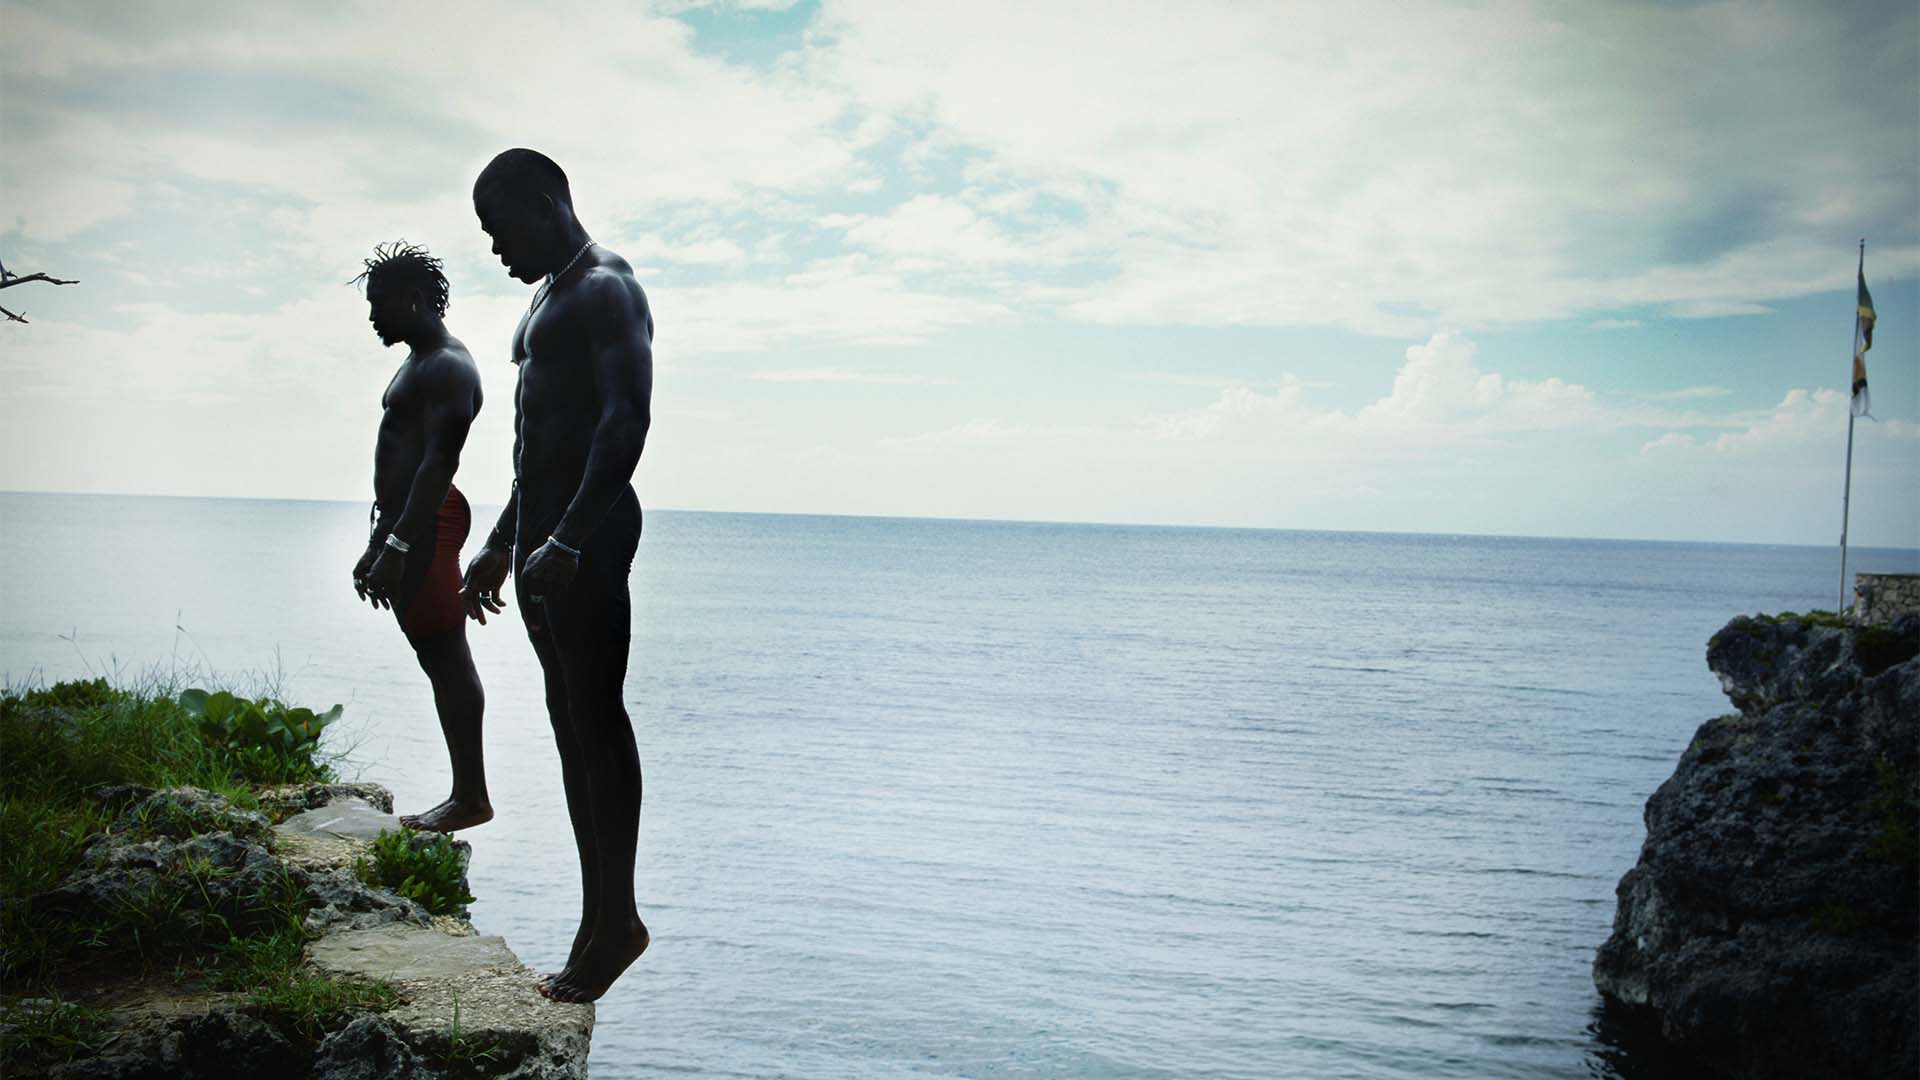 Two men prepare to dive from a cliff in Negril, Jamaica